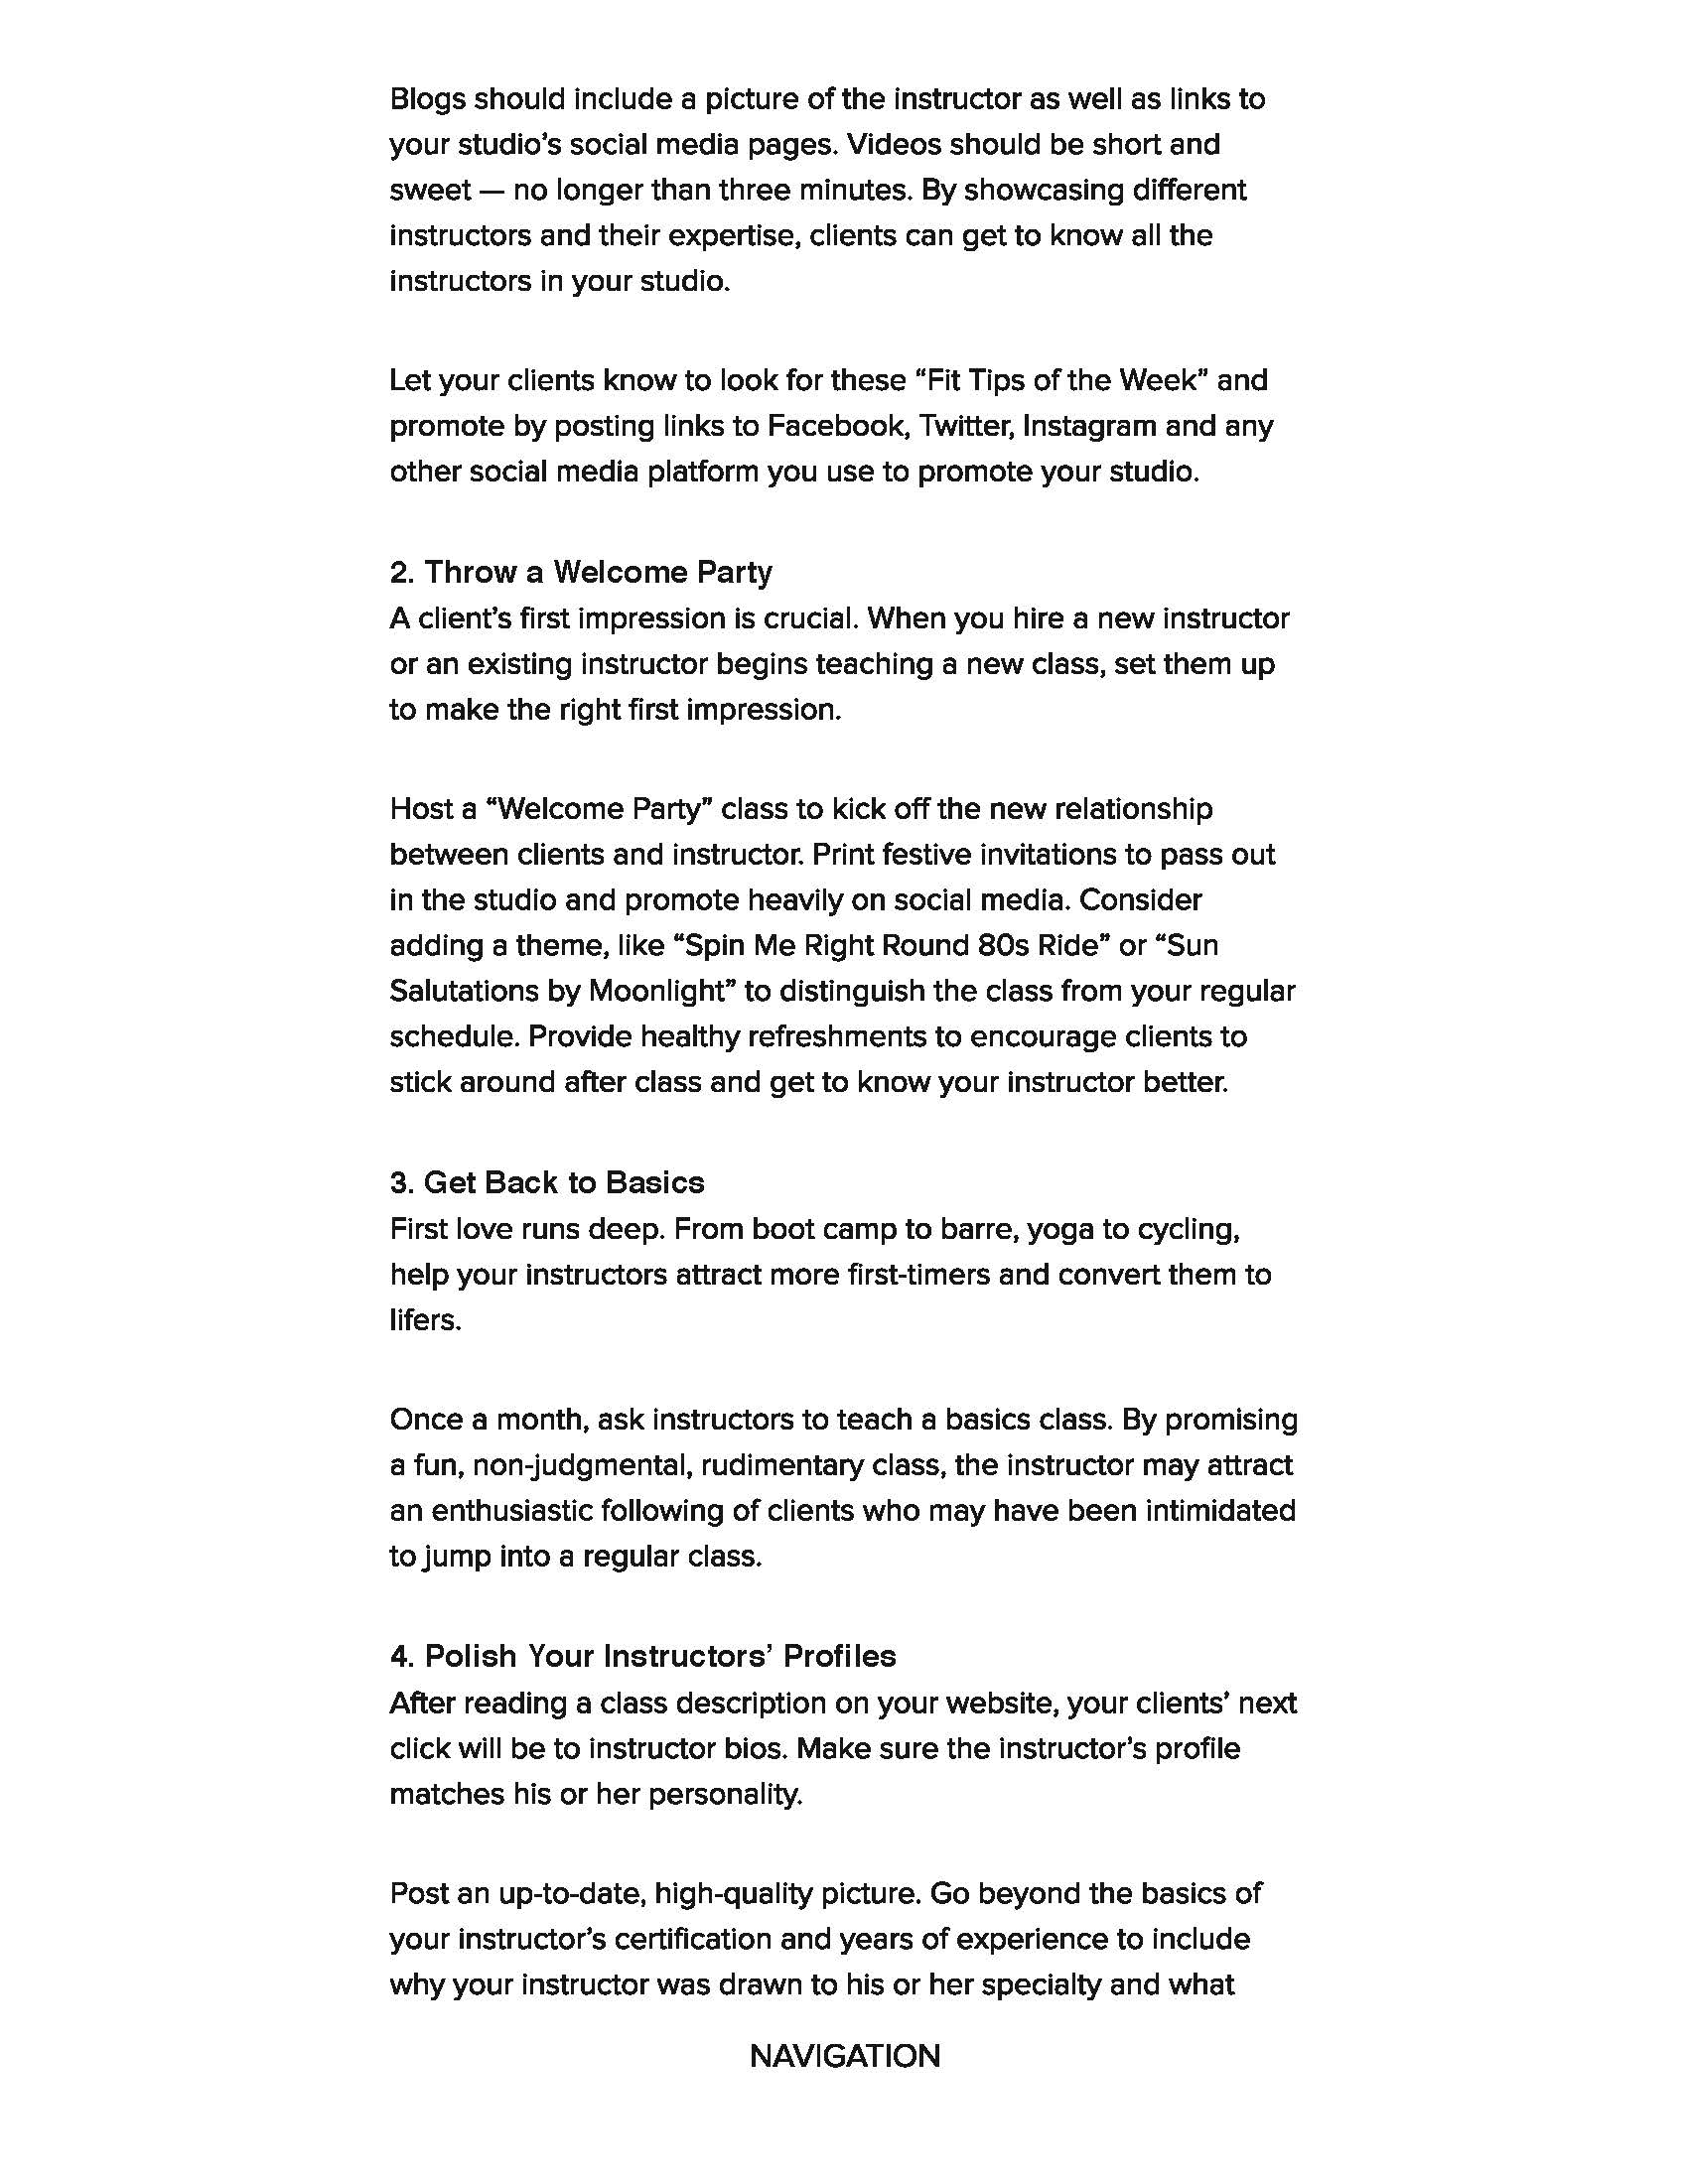 marketing practices spotlight- 6 ways to market your instructors copy_Page_2.jpg